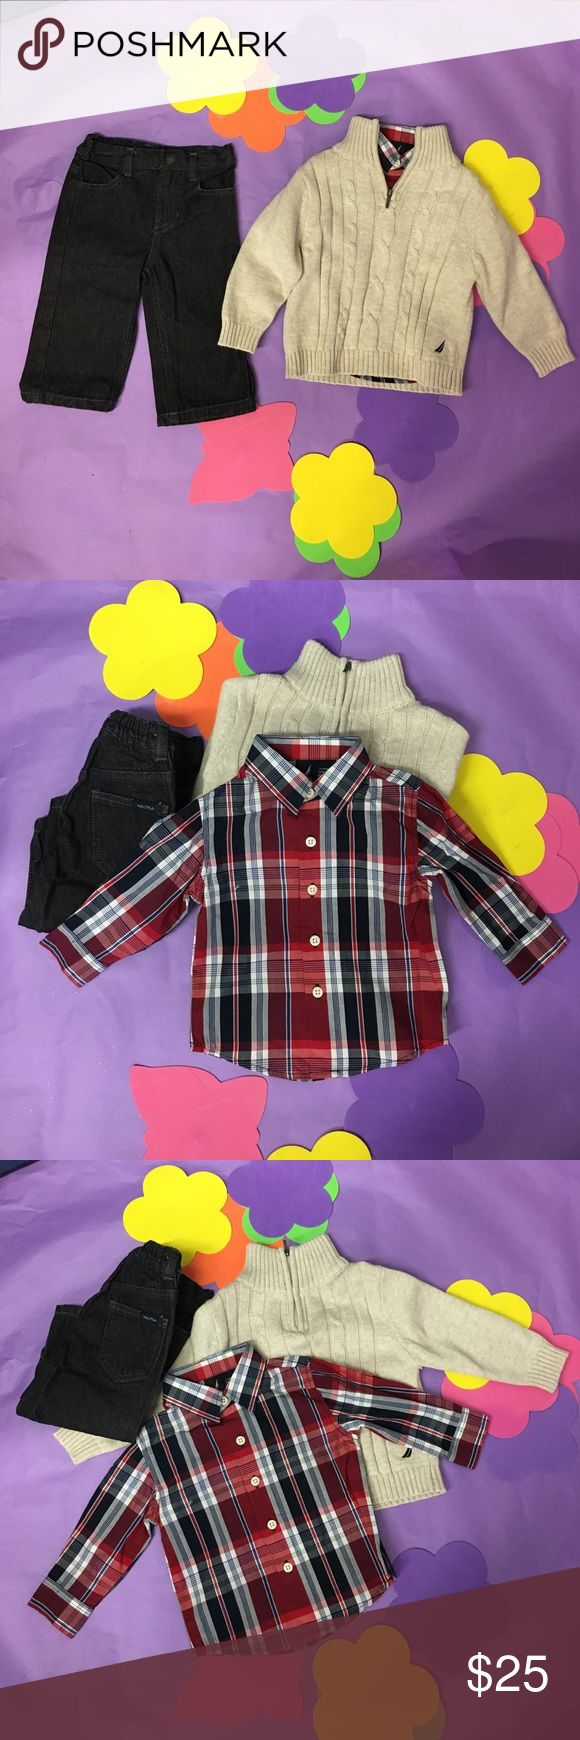 NWT Náutica boy pants sweater and shirt set 9M NWT Náutica boy pants sweater and shirt set 9M. Black jeans with plaid shirt and beige zip up sweater. Nautica Matching Sets